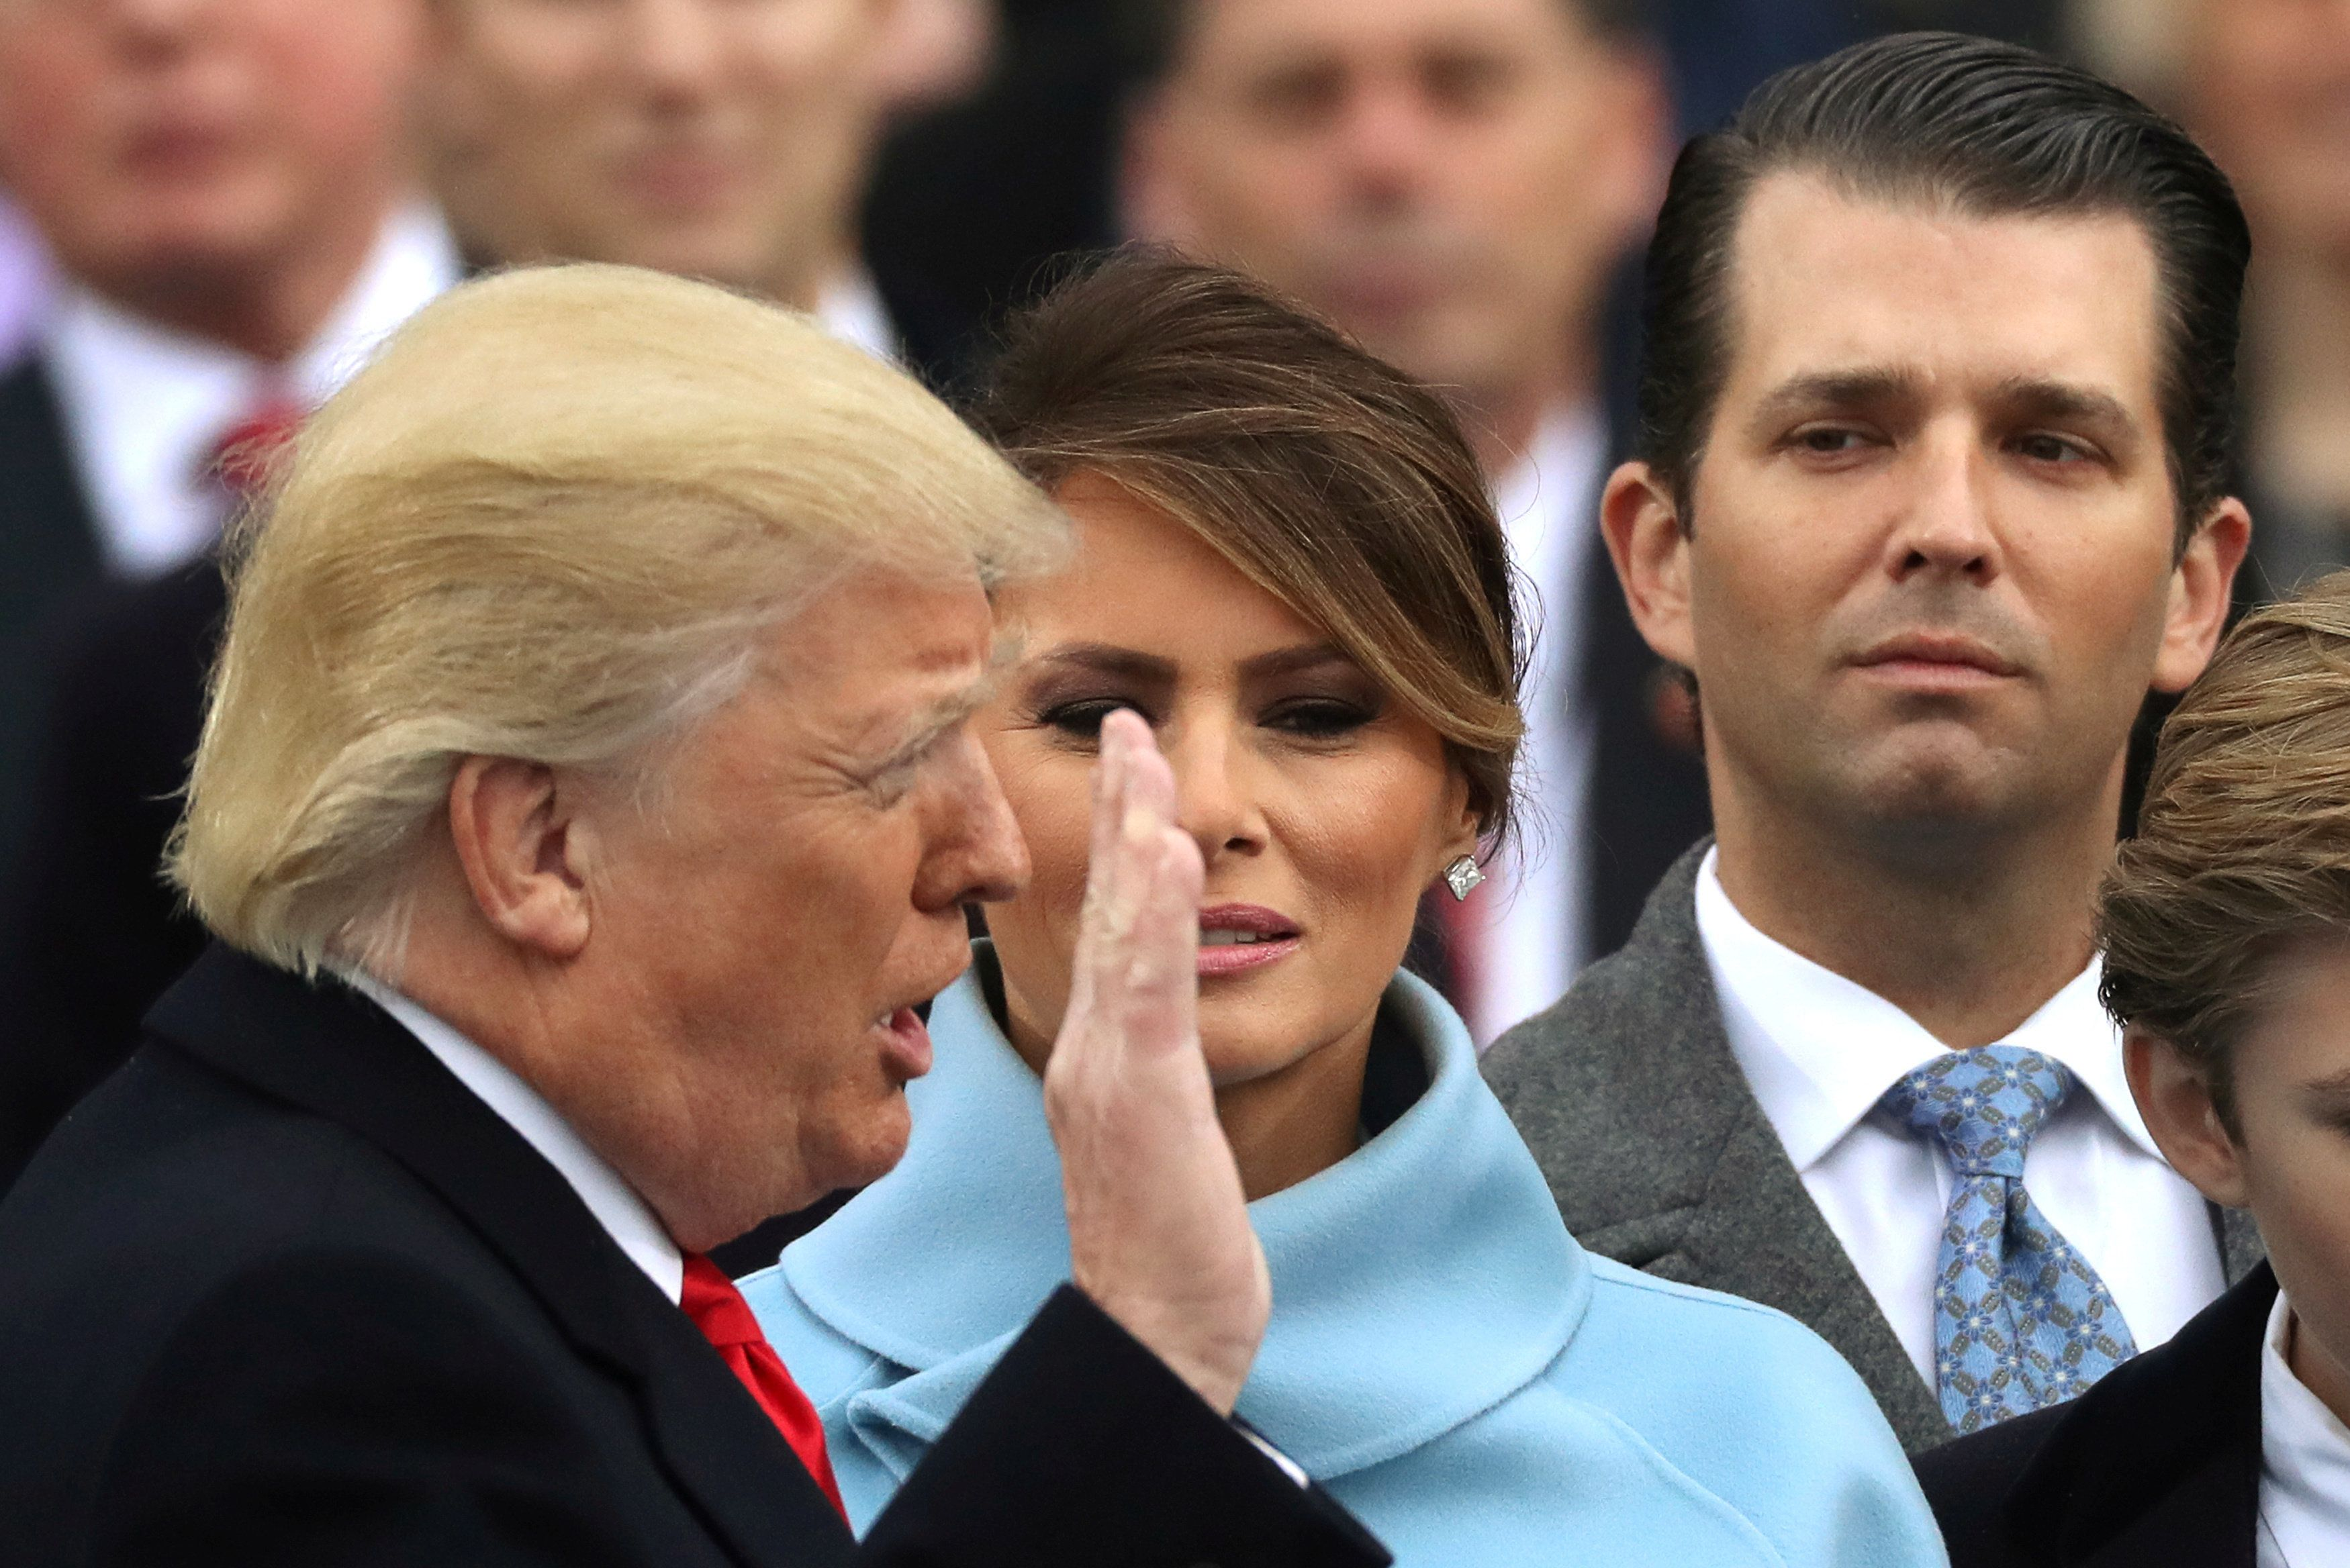 Carlos Barria  Reuters Donald Trump Jr. watches as his father Donald Trump is sworn in as the 45th president of the United States